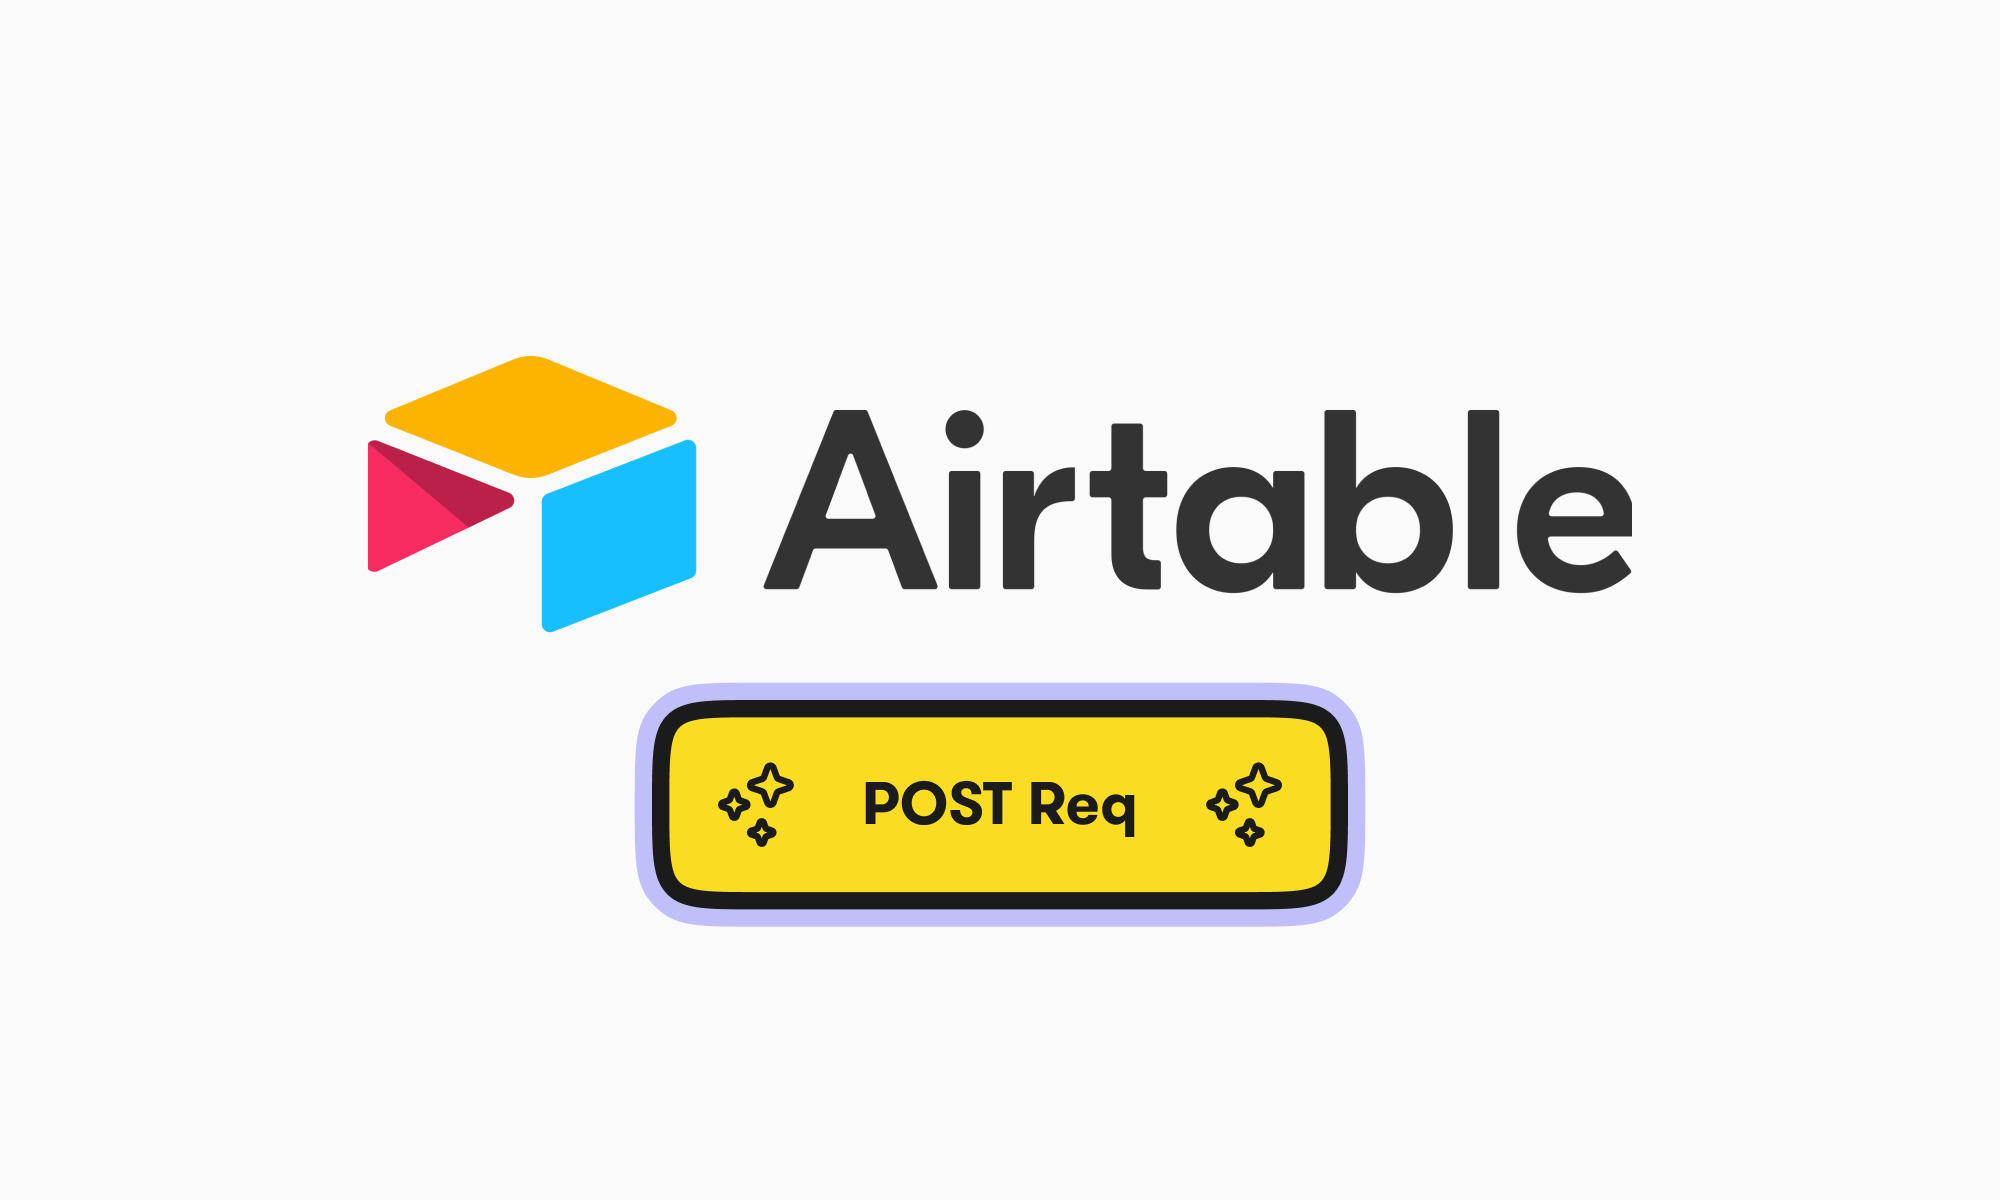 How to connect and save data using Airtable (POST Request)